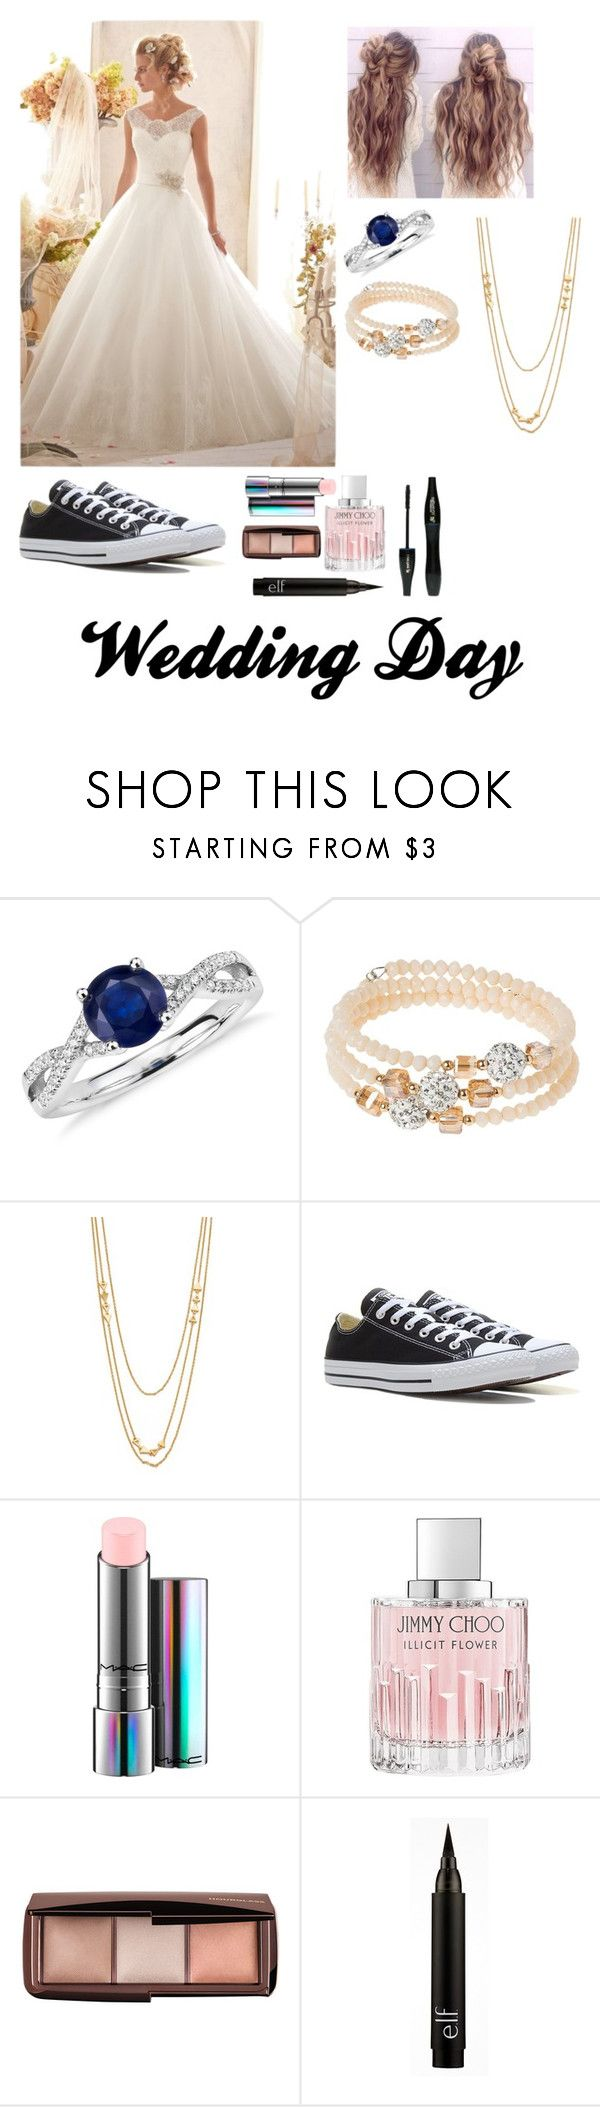 """""""Untitled #16"""" by ice-sprinkles ❤ liked on Polyvore featuring Blue Nile, sweet deluxe, Gorjana, Converse, MAC Cosmetics, Jimmy Choo and Lancôme"""